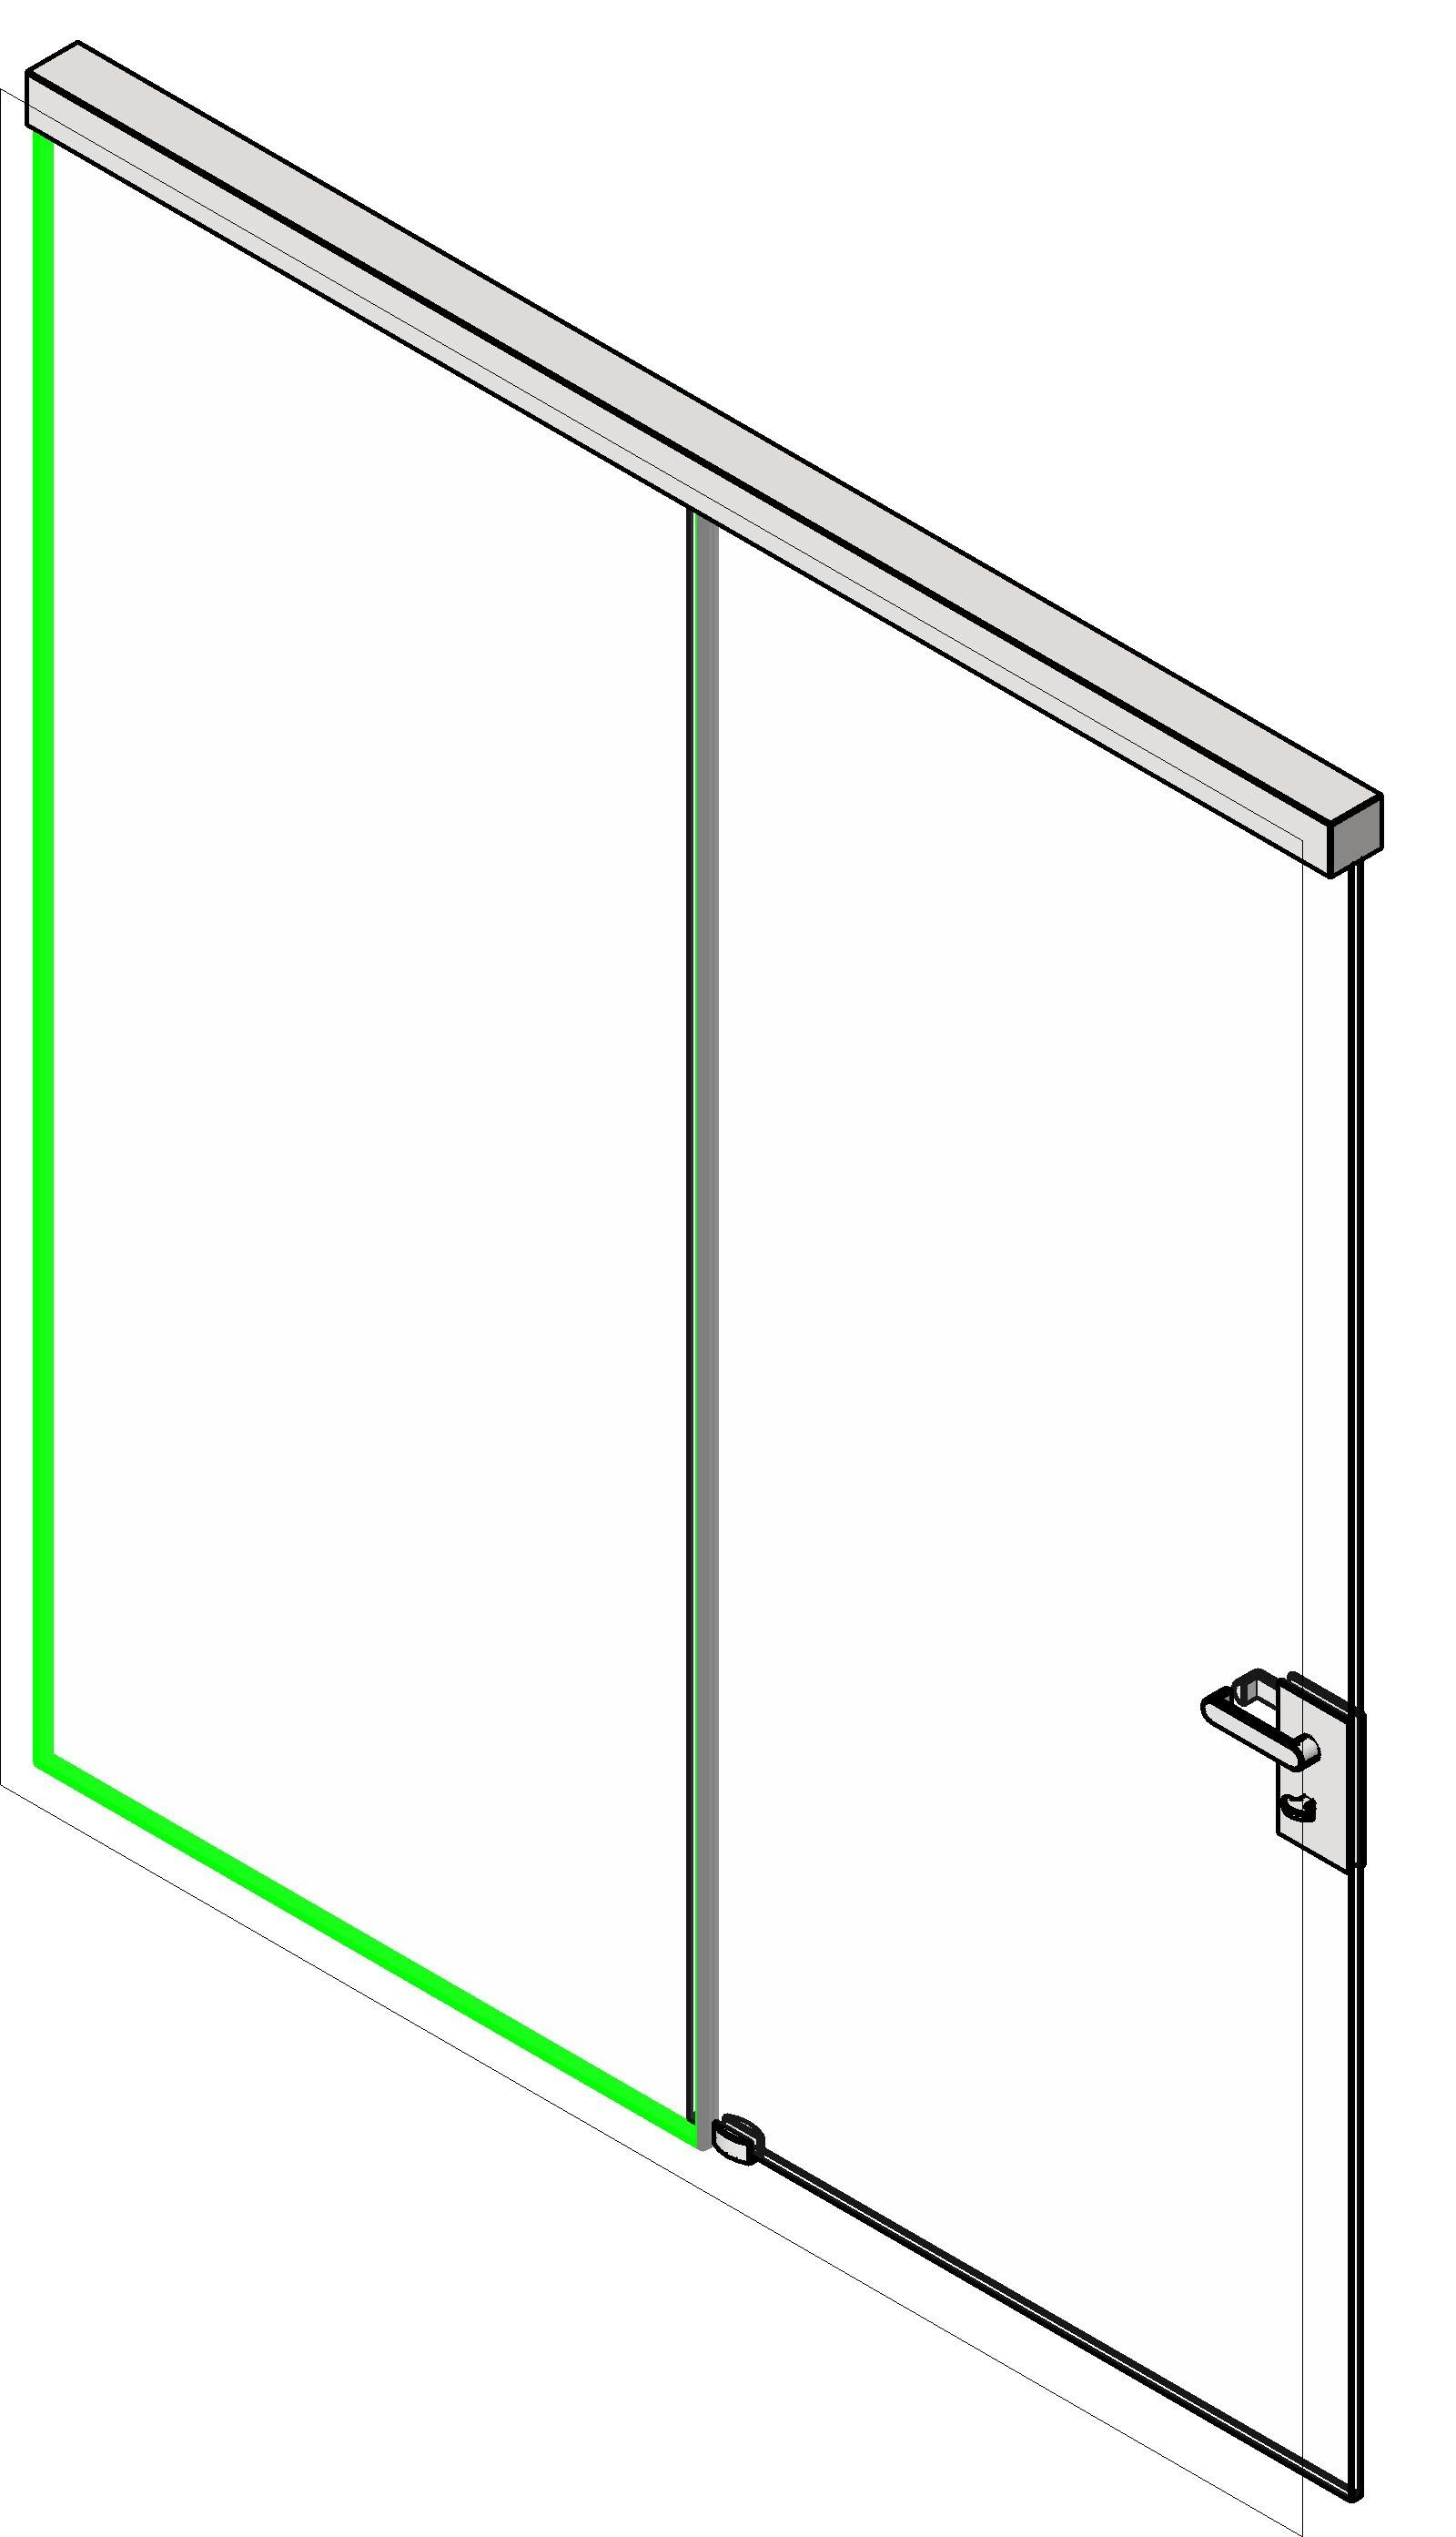 Glass Pocket Door Revit  sc 1 st  Pinterest & Glass Pocket Door Revit | Revit 2 | Pinterest | Glass pocket doors ...